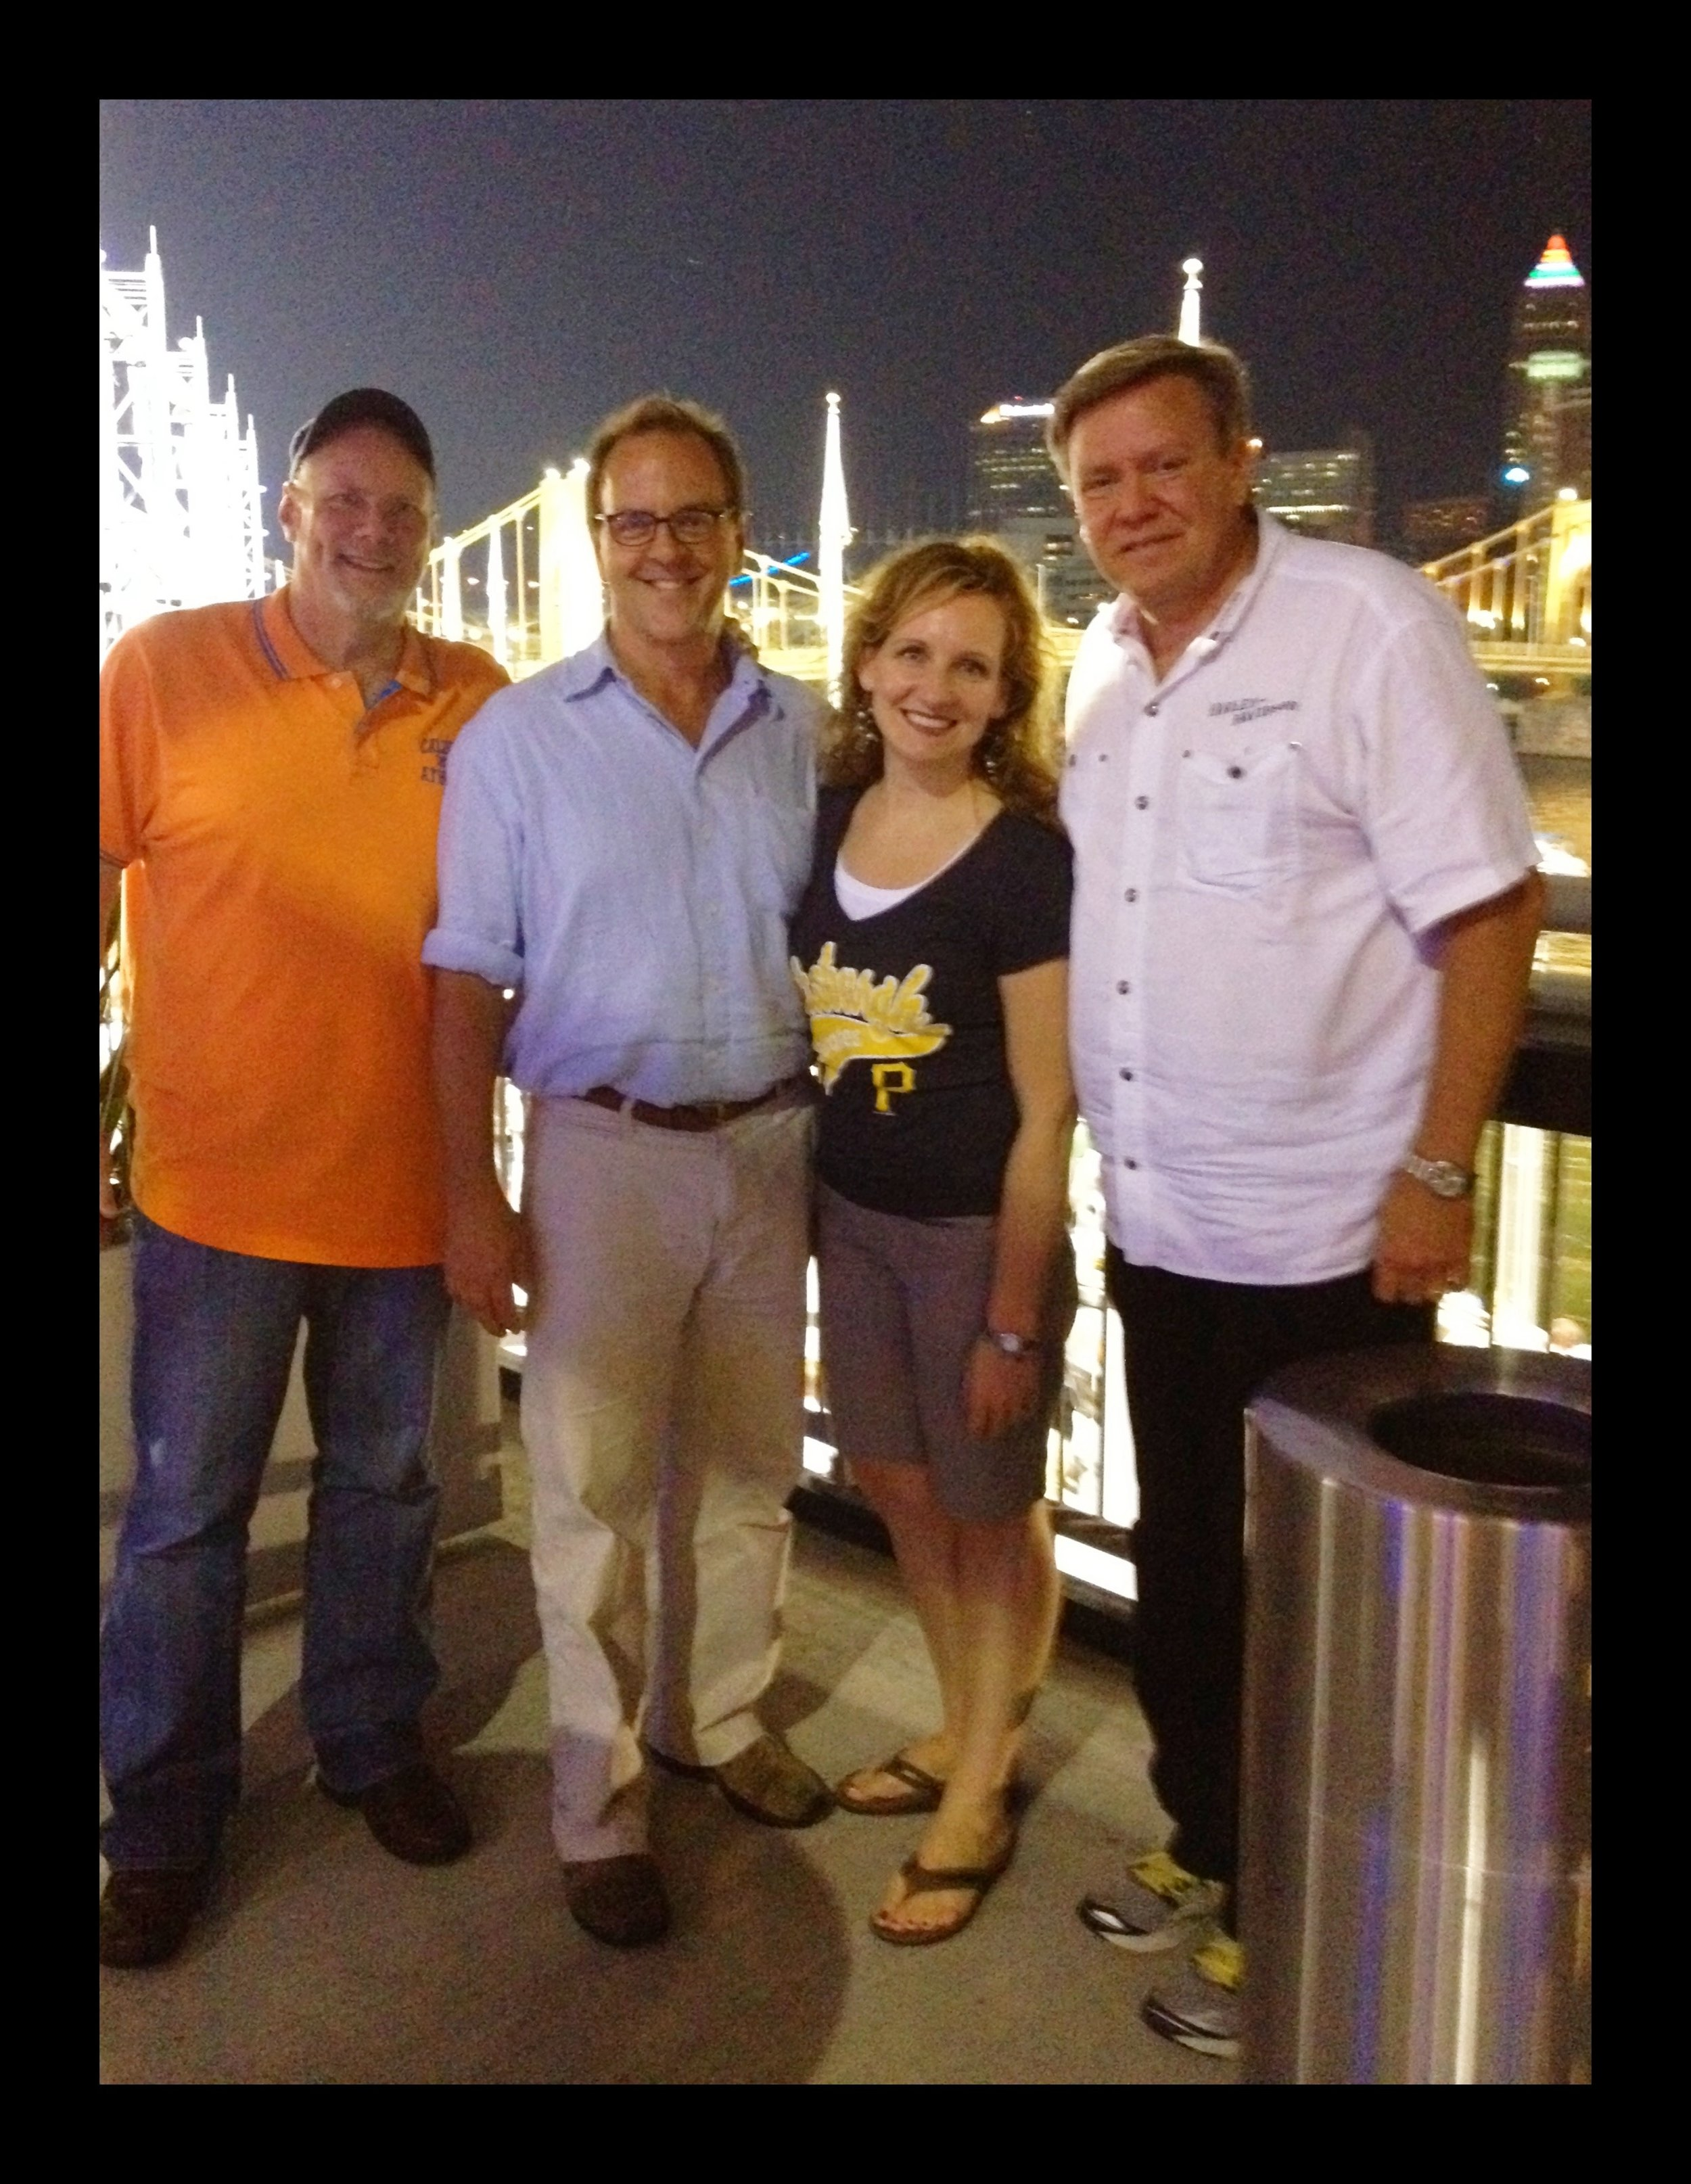 with Jim Vedhuis & Tom Lewis, the Cross International Guys, PNC Park (2012)